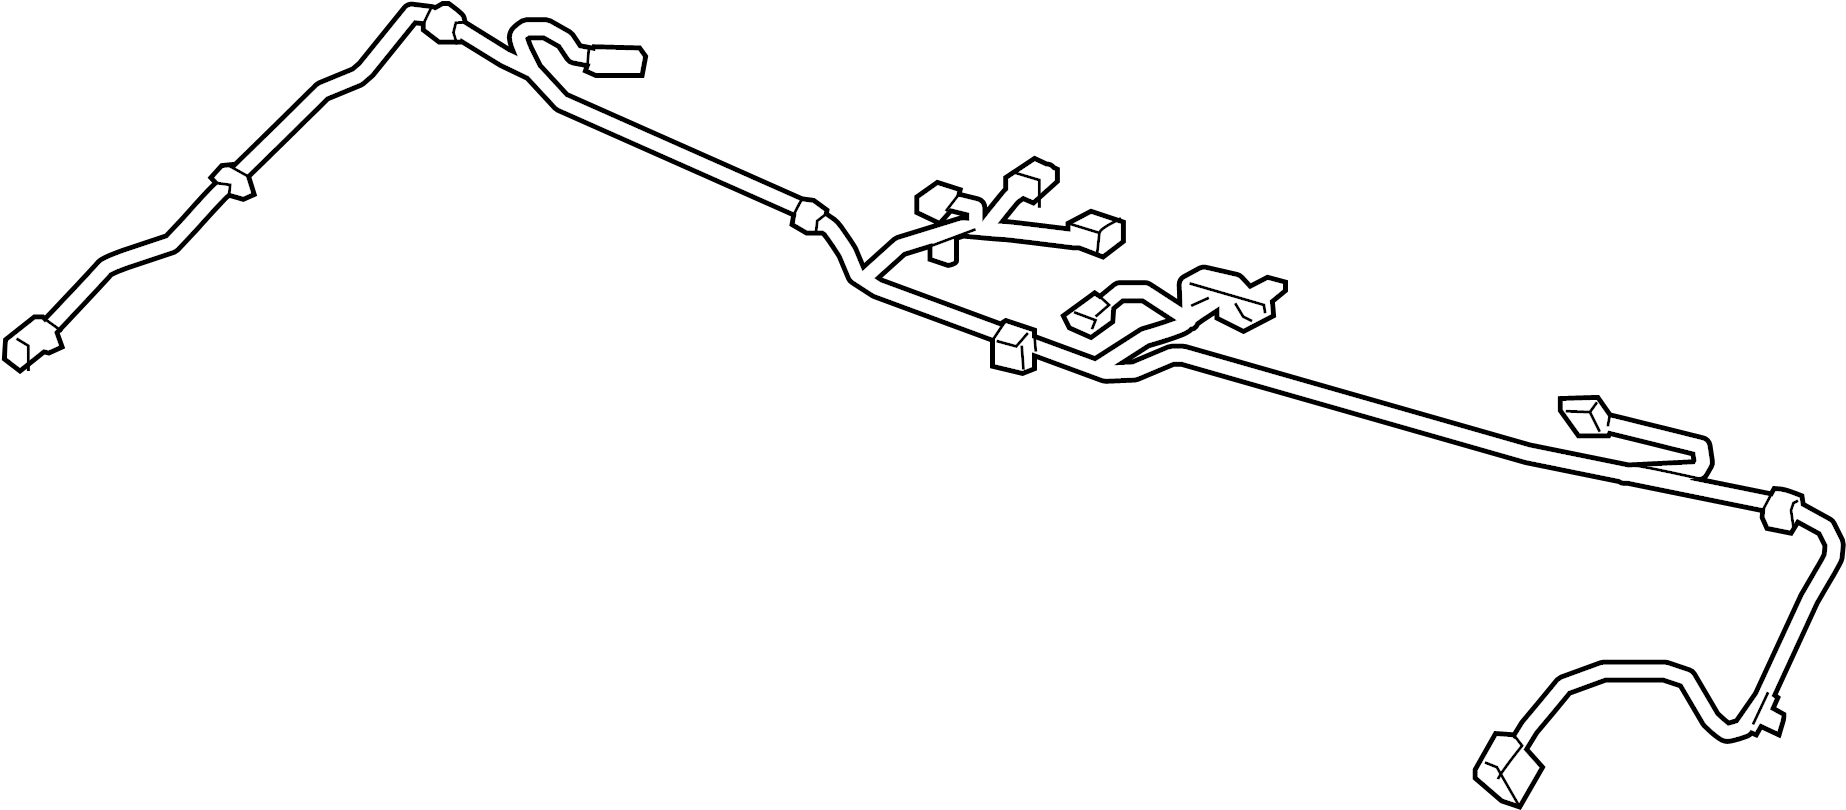 Chevrolet Camaro Console Wiring Harness. CONVERTIBLE, 2nd